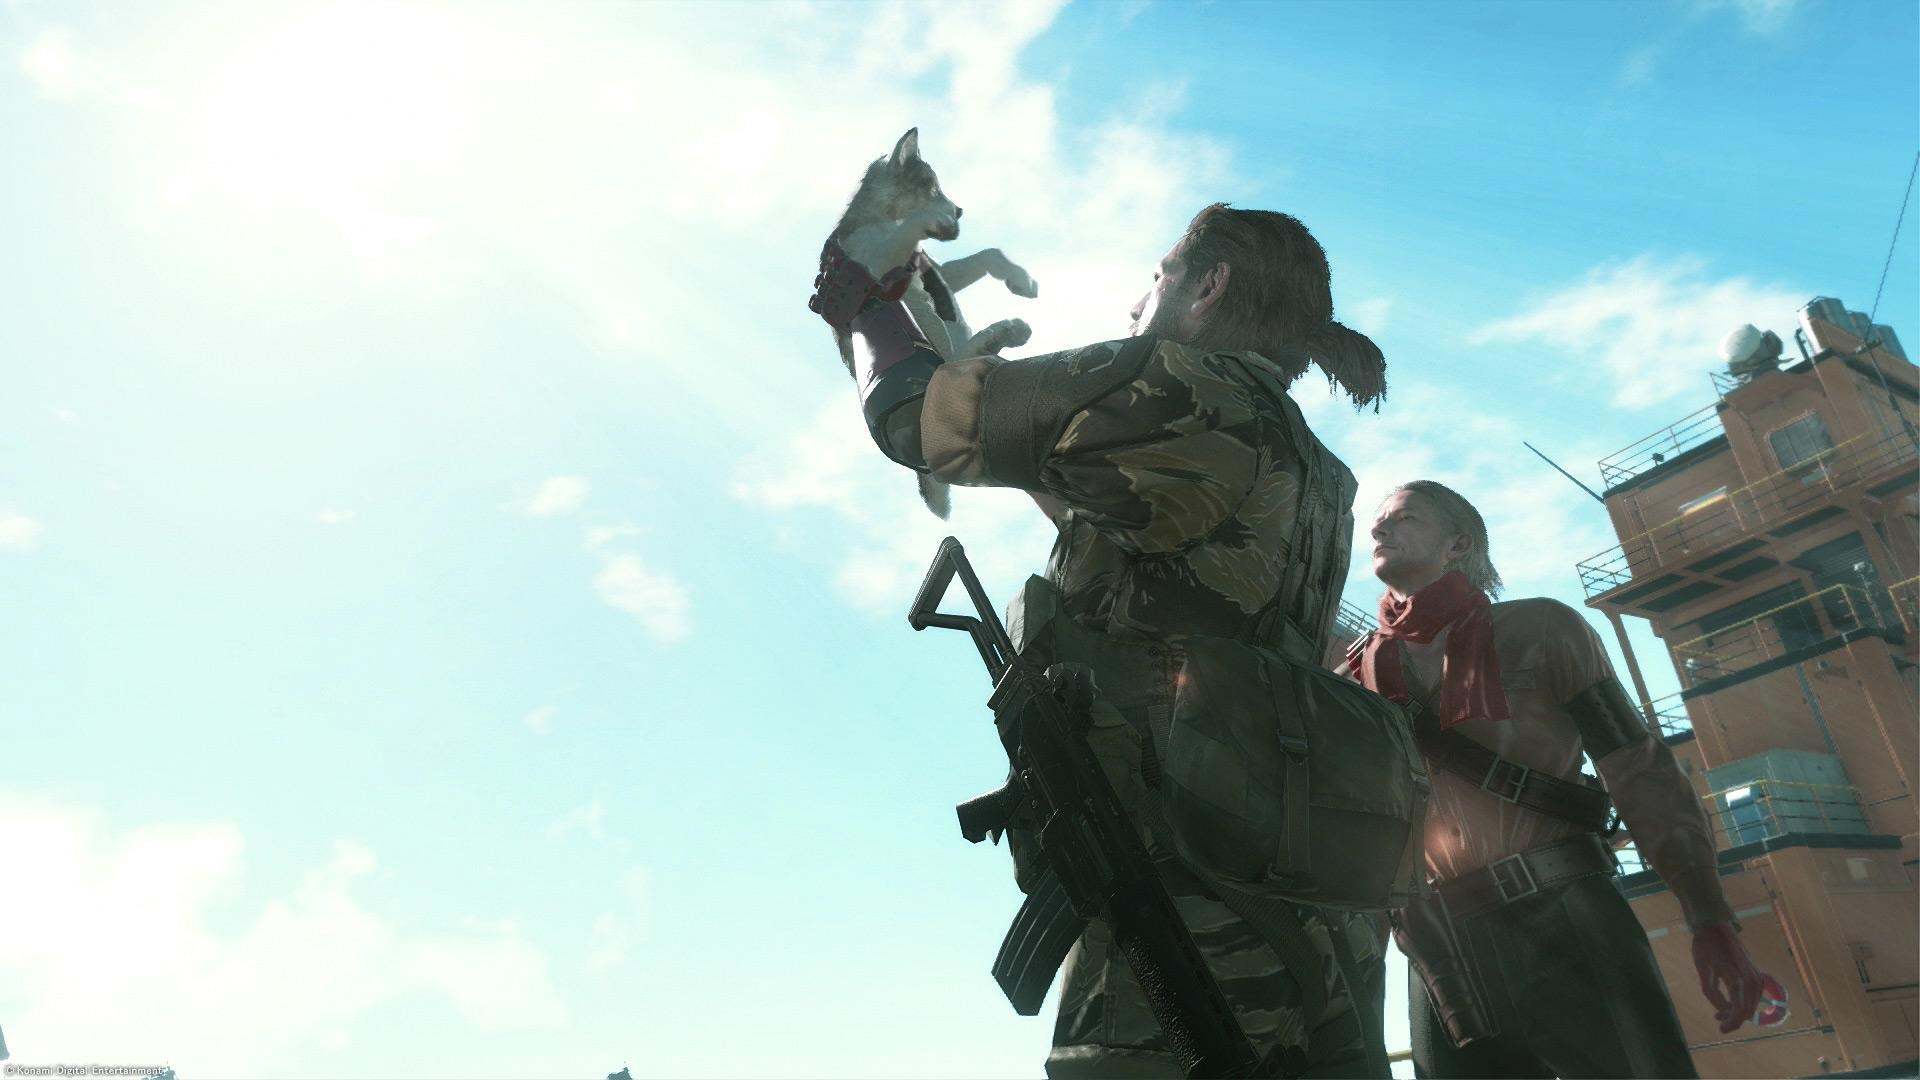 1920x1080-free-desktop-downloads-metal-gear-solid-v-the-phantom-pain-wallpaper-wp360789-1